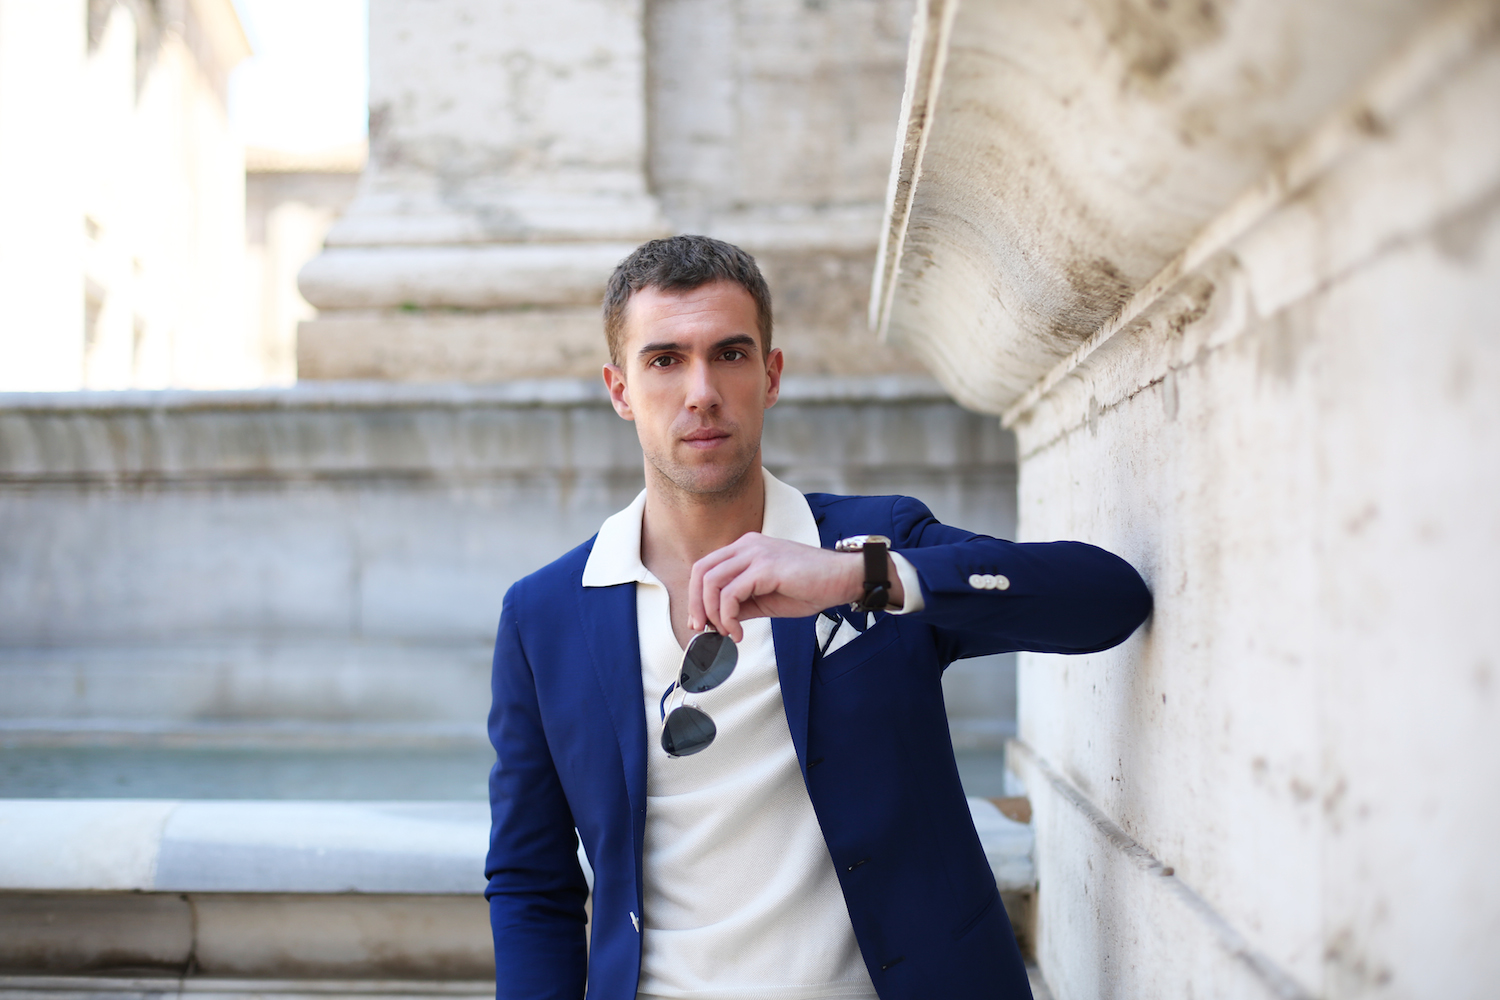 filippo-cirulli_mensear-influencer_menswear-icon_bright-blue-suit_tom-ford-shirt